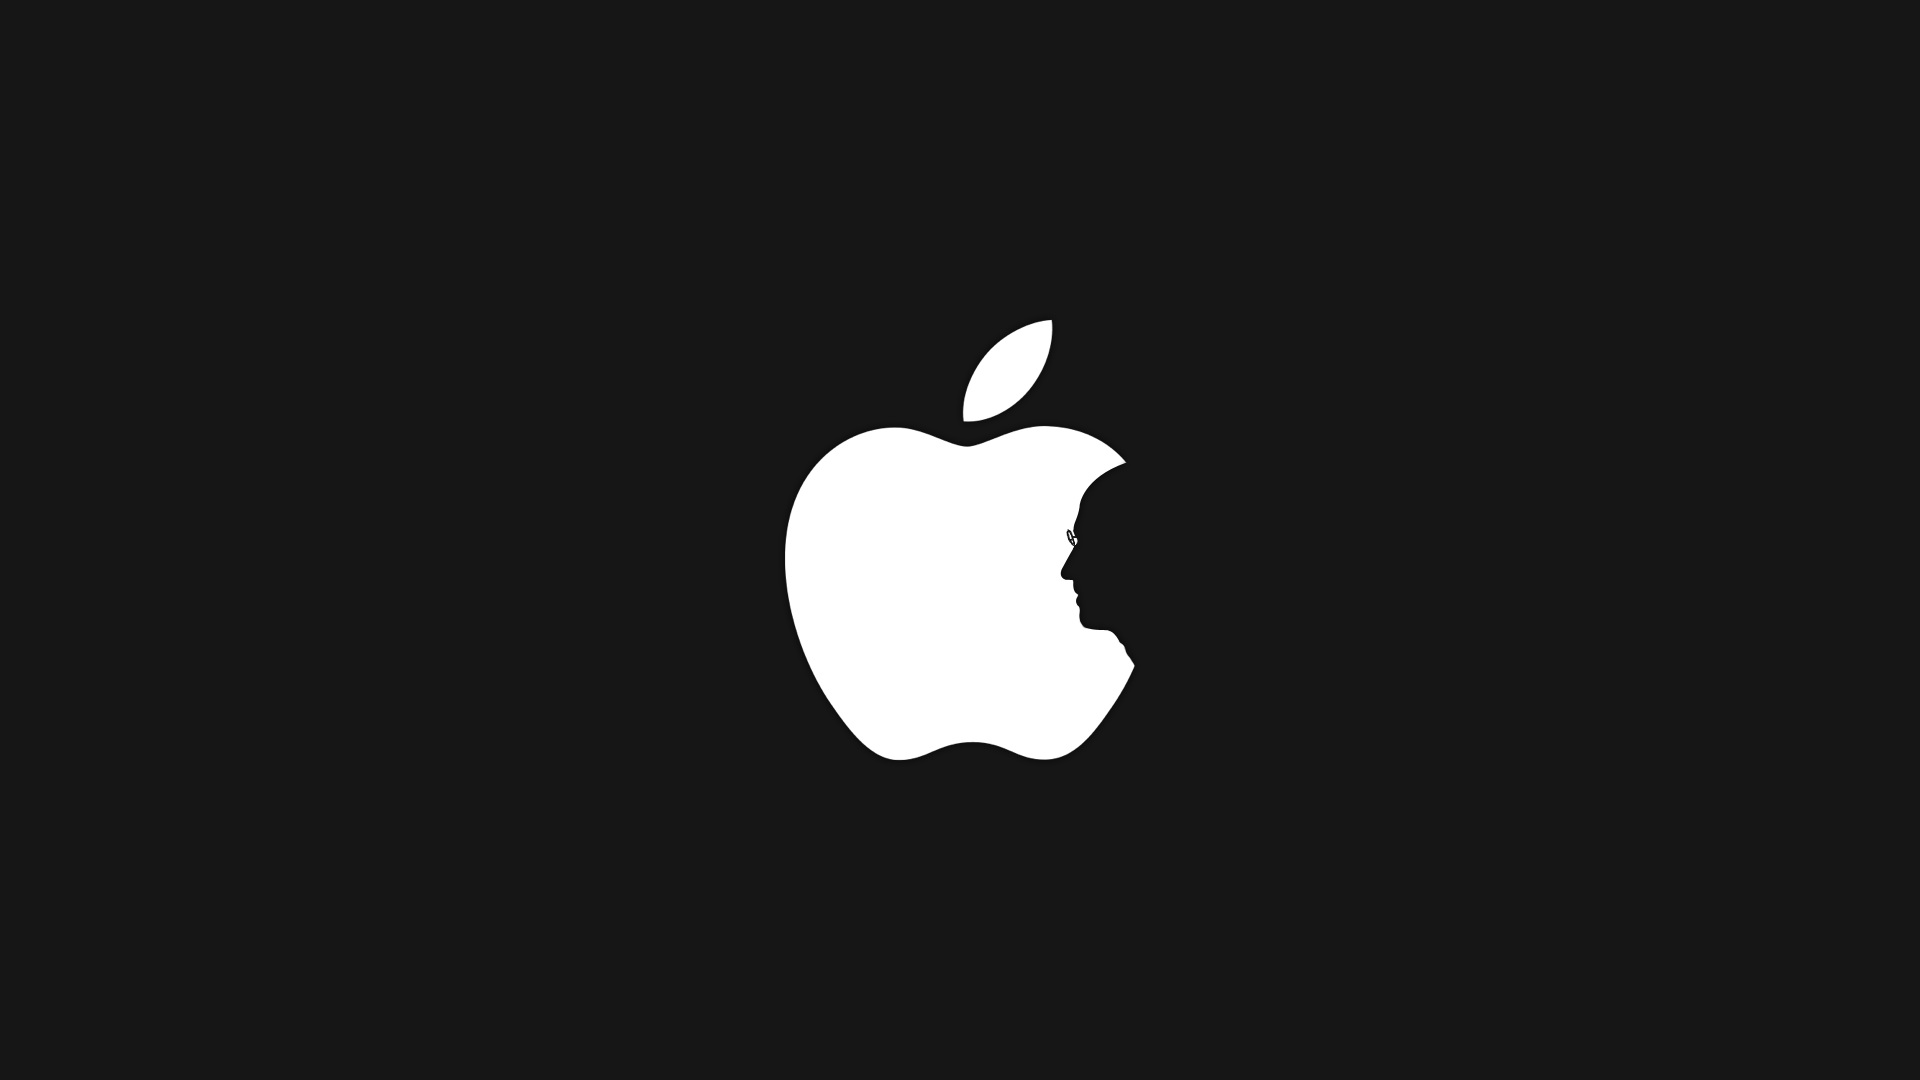 Steve Jobs Apple Silhouette